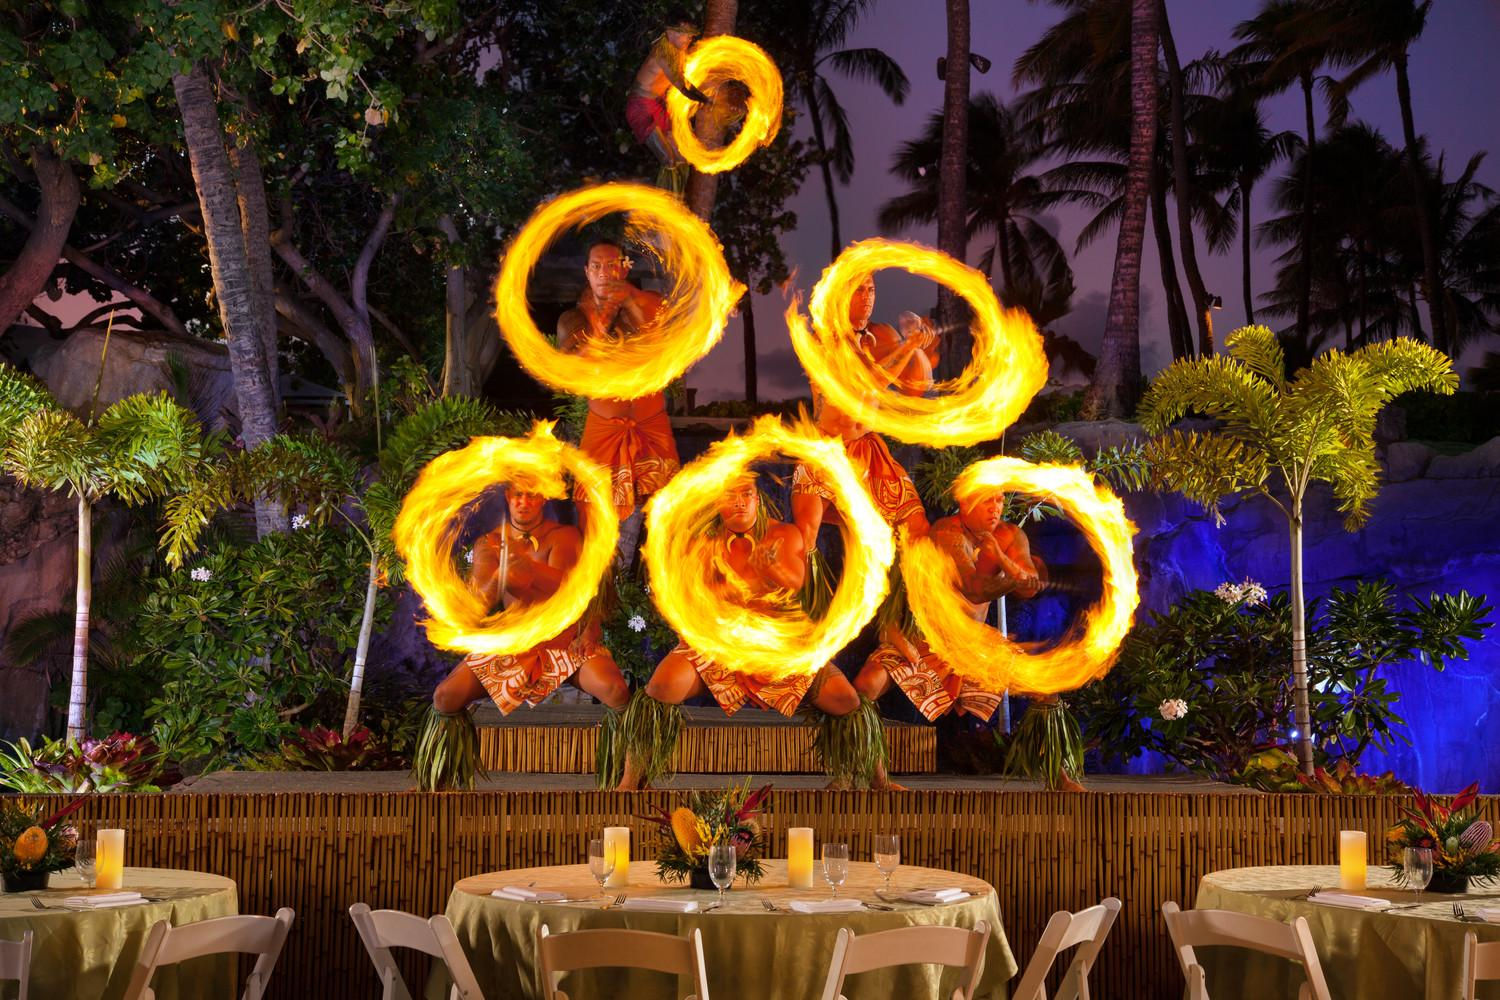 Famous Fire Knife Dancers at Westin Maui's Wailele Luau